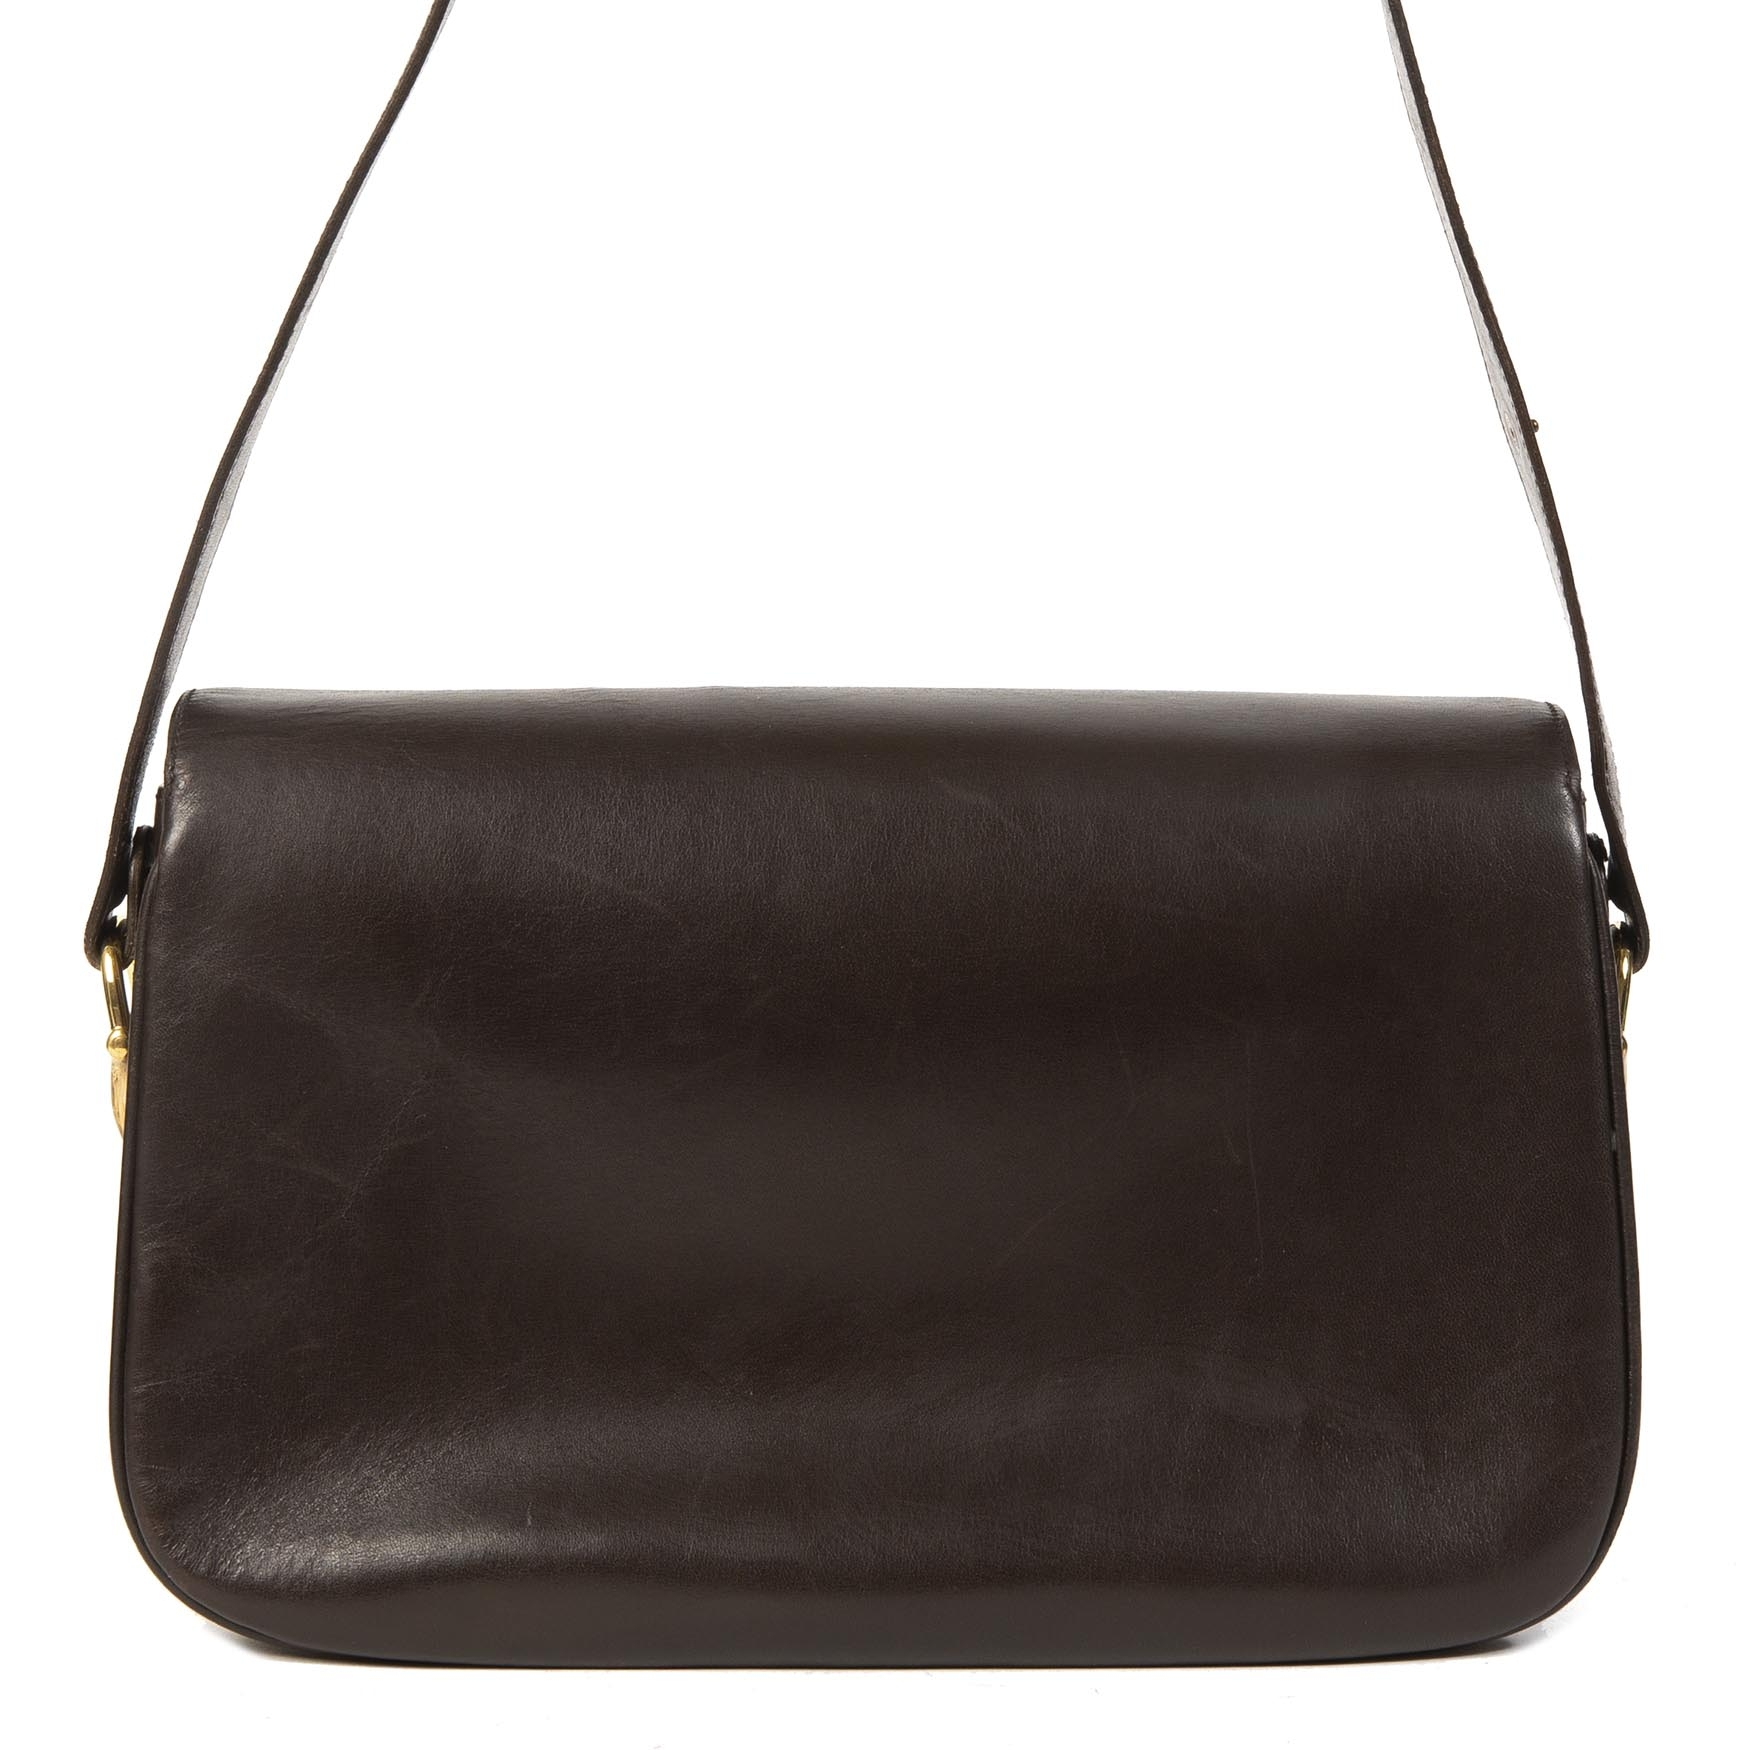 100% authentic Gucci Vintage Dark Brown Leather Zumi Flap Bag